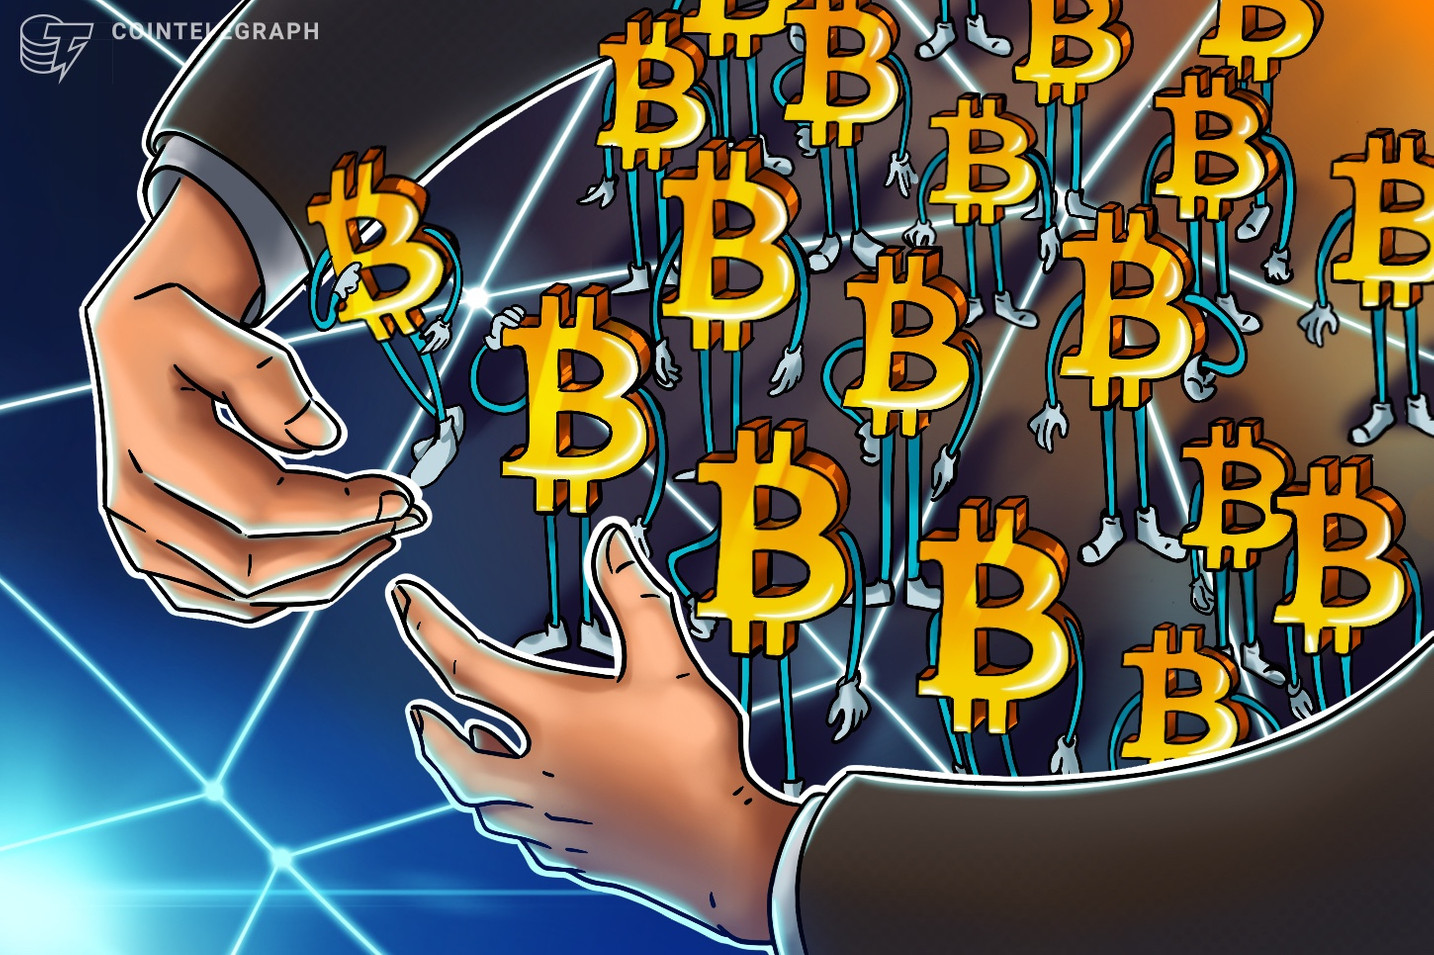 Listed companies, trusts and ETPs now control almost 7% of the Bitcoin supply